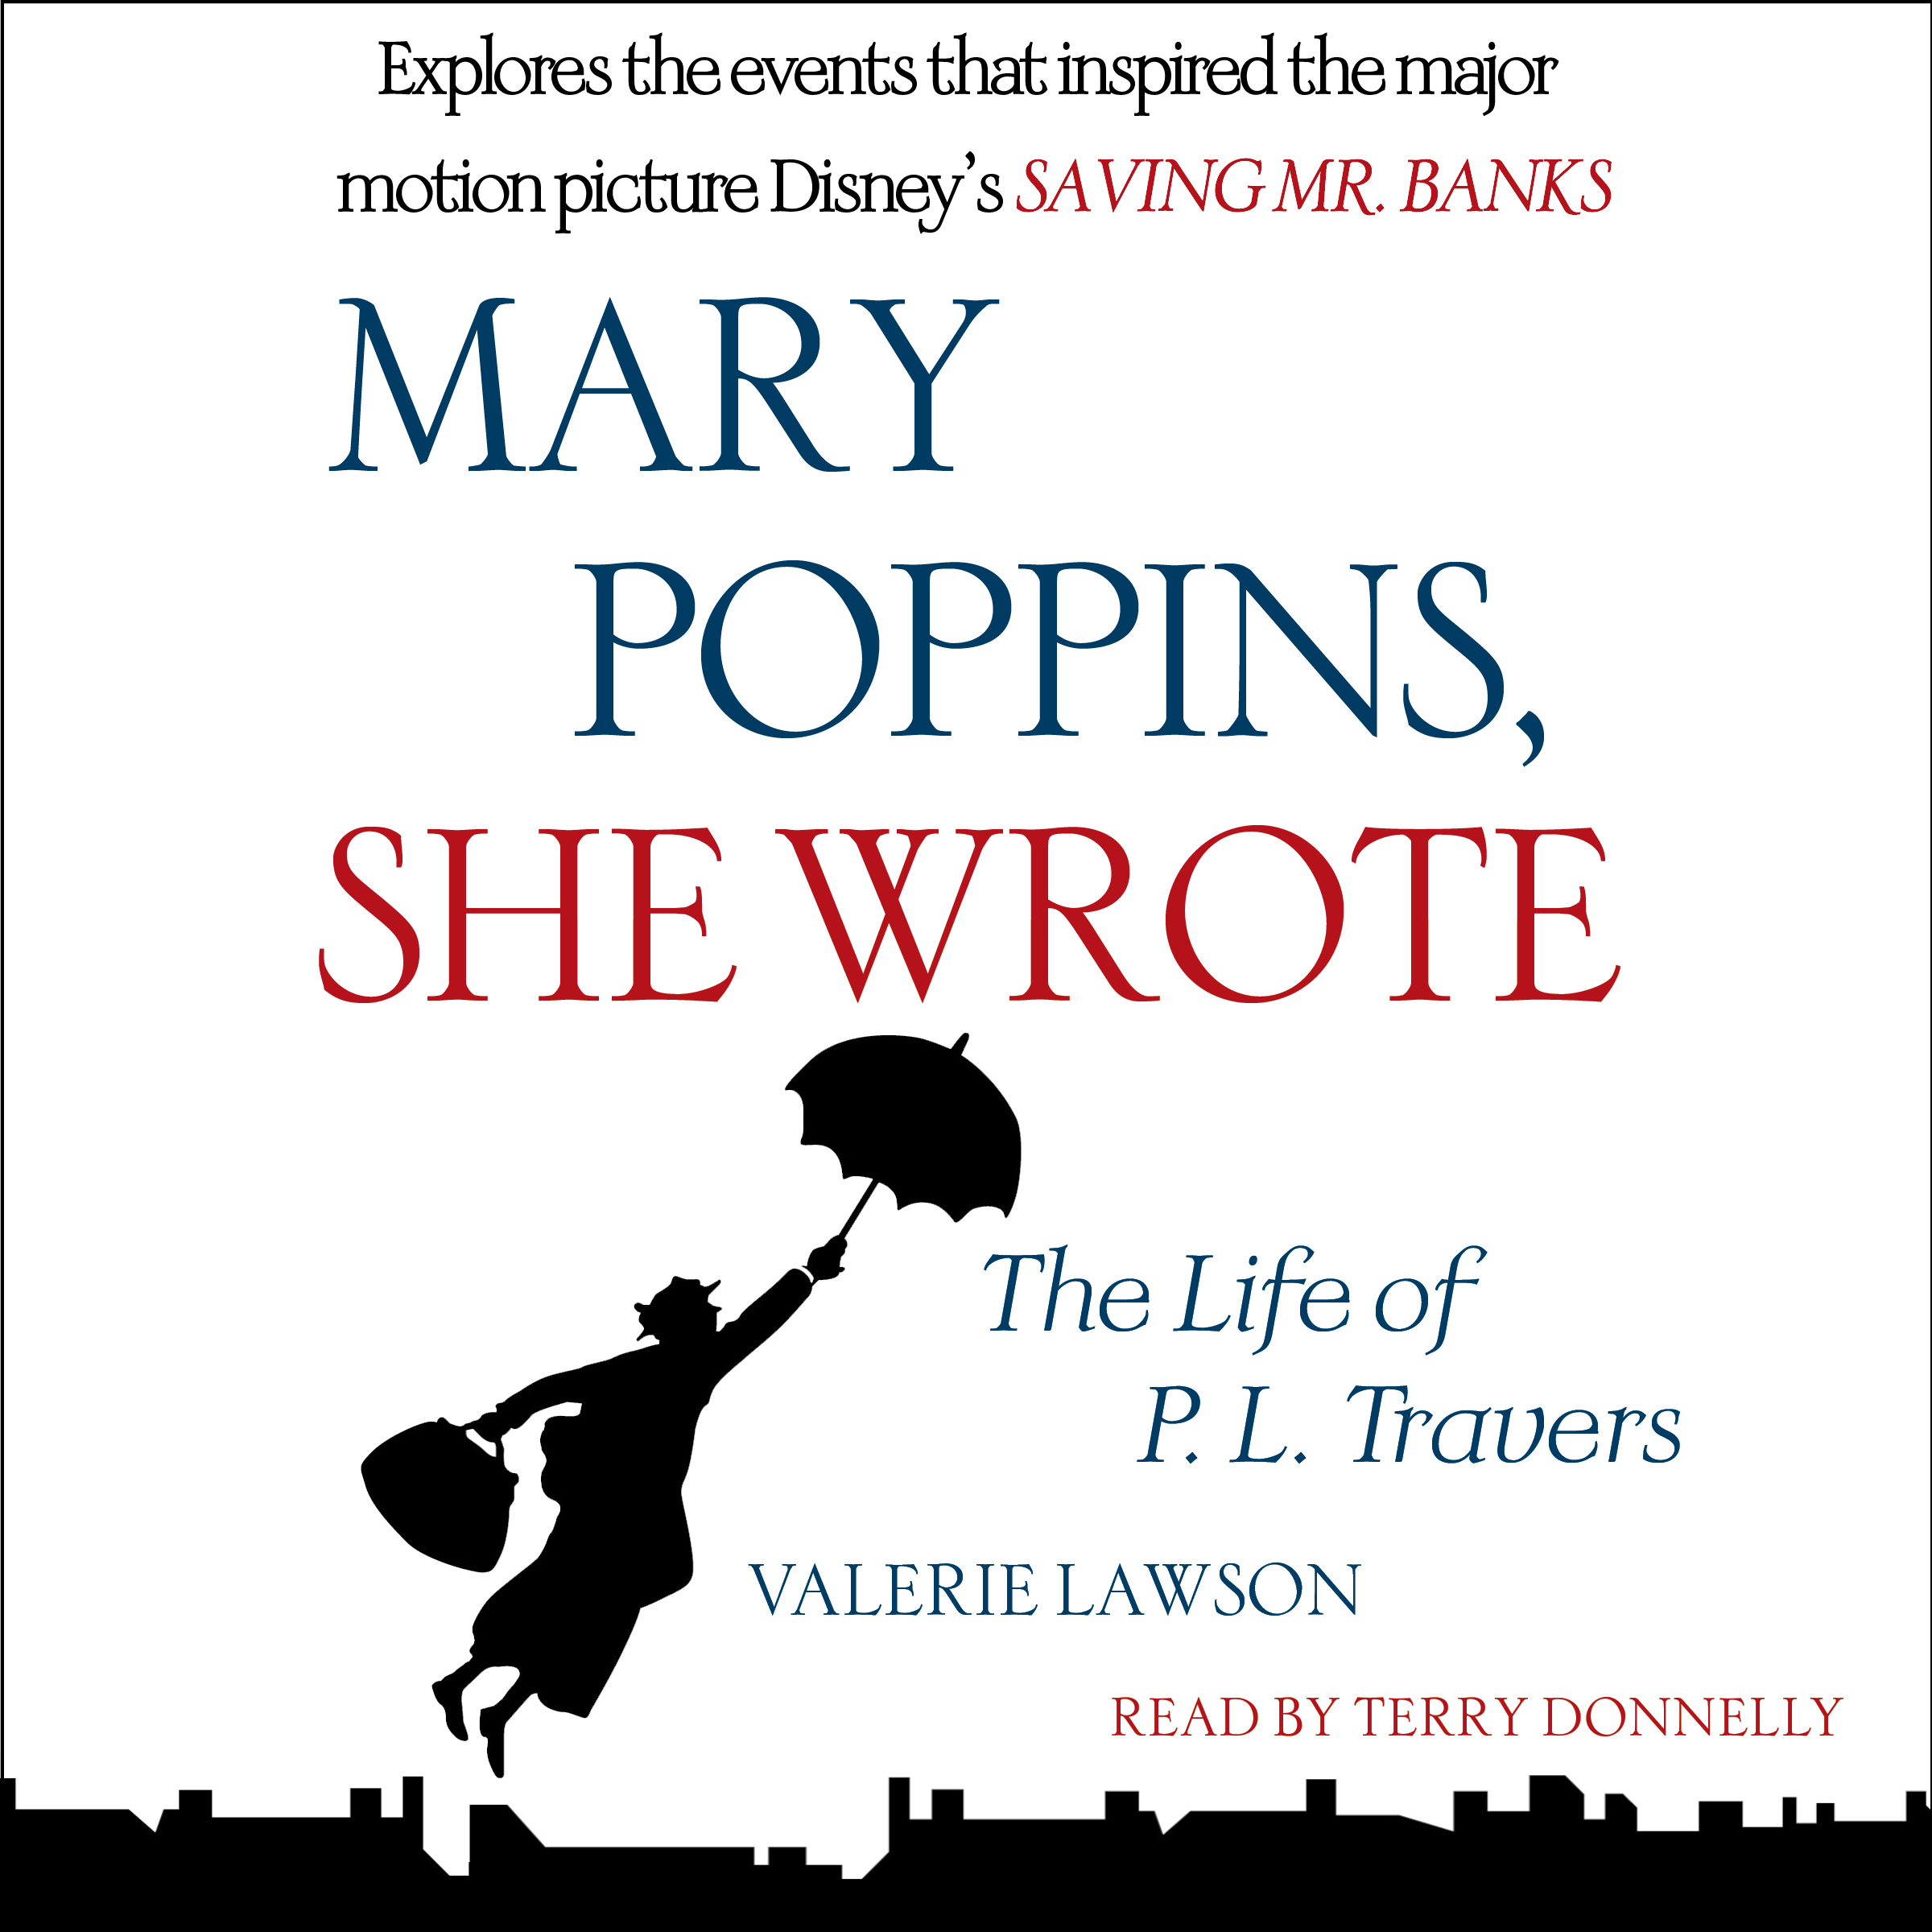 Mary poppins she wrote 9781442370135 hr